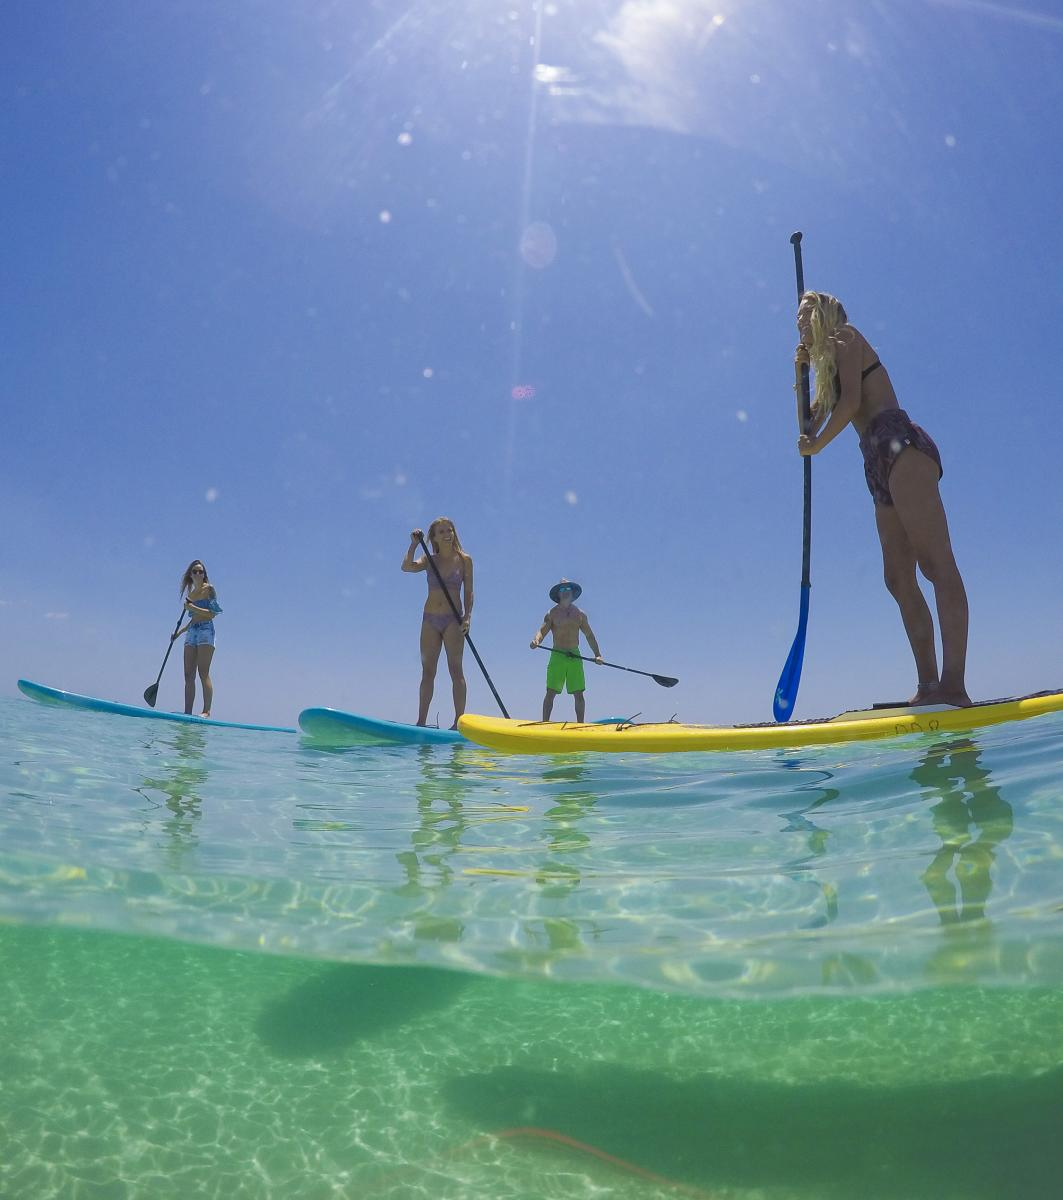 Paddleboarding at Park East on Pensacola Beach